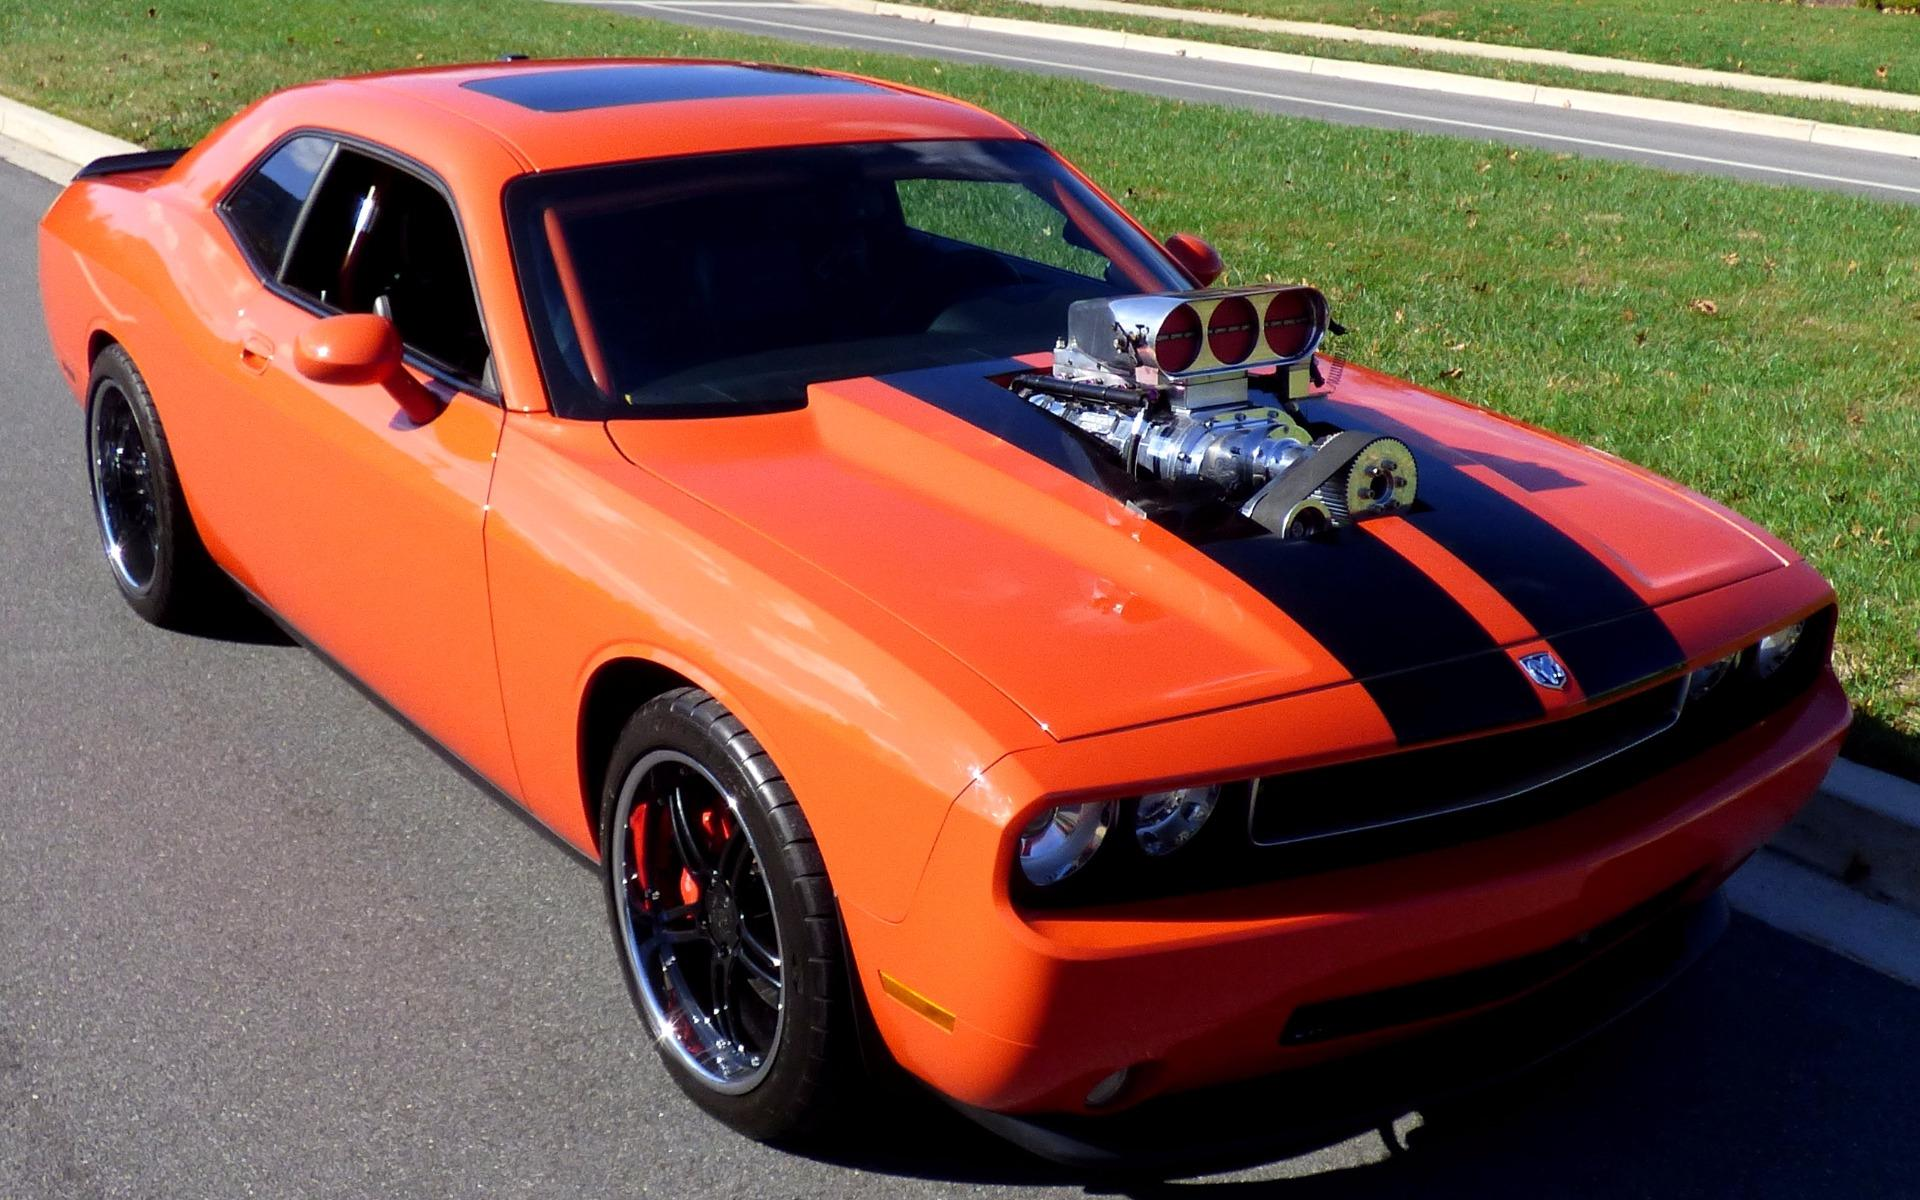 2009 Dodge Challenger One Of A Kind Over 1200 Hp Super